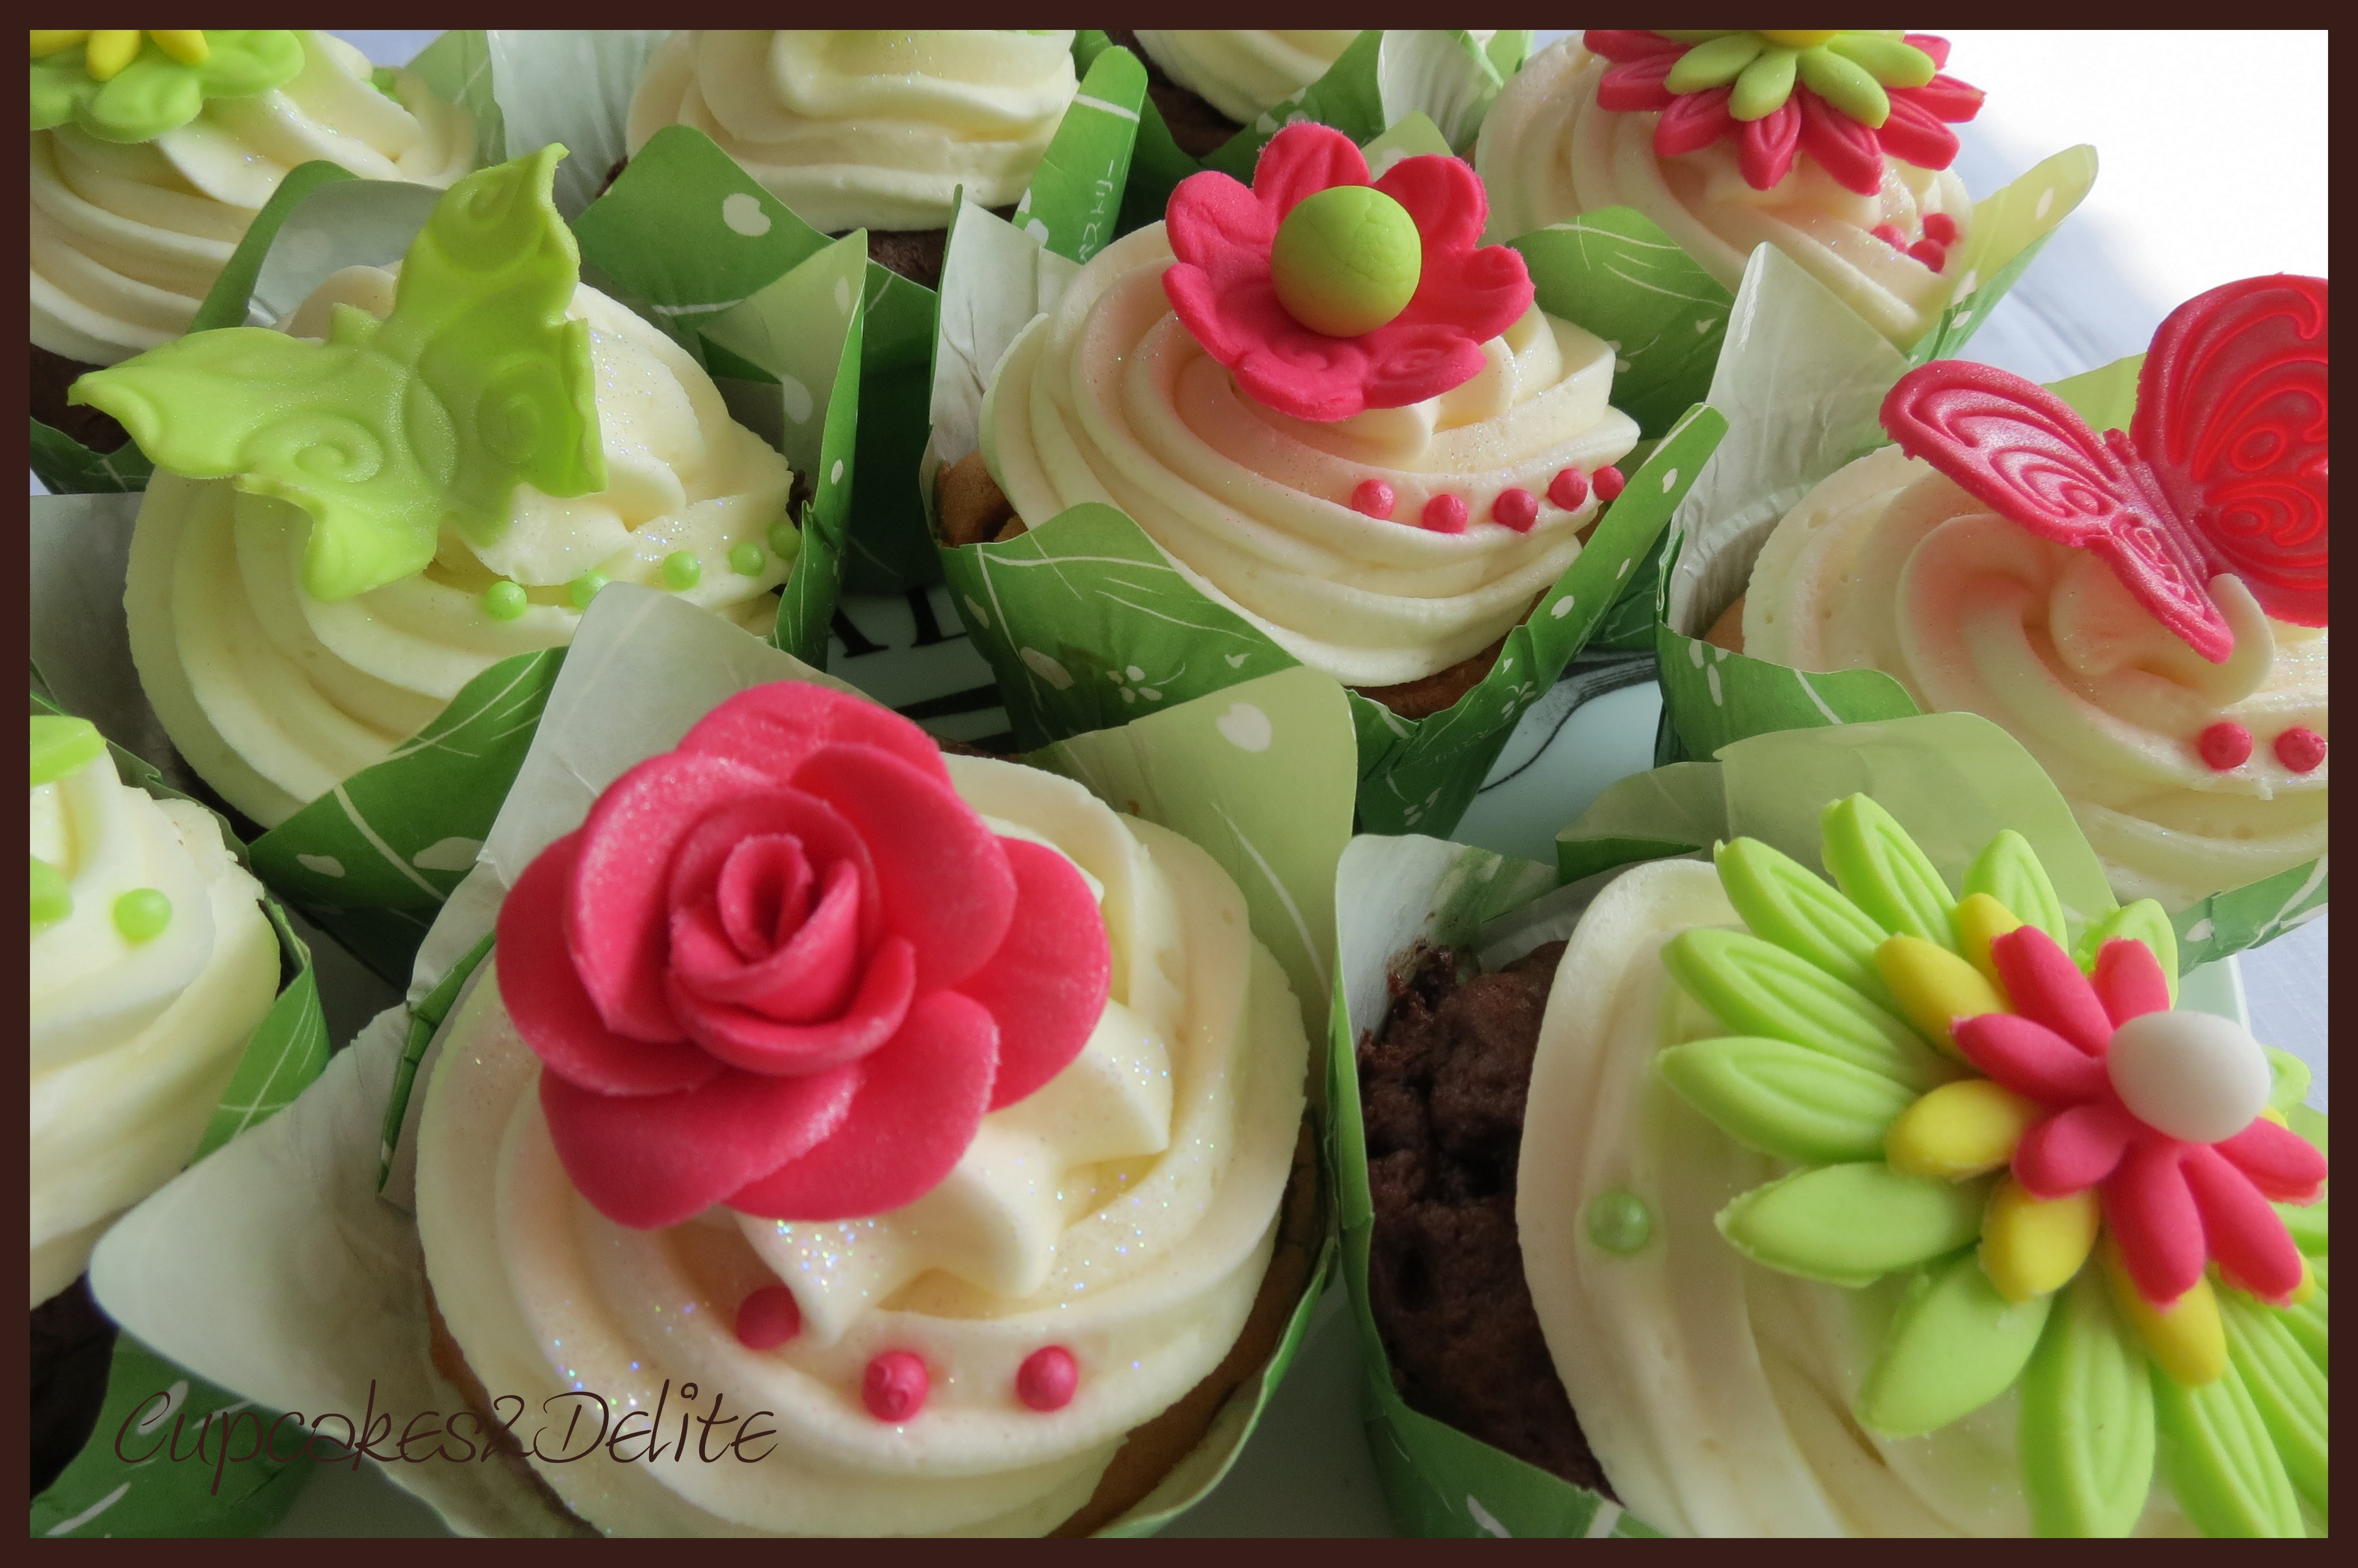 Lime Green Cupcakes2delite